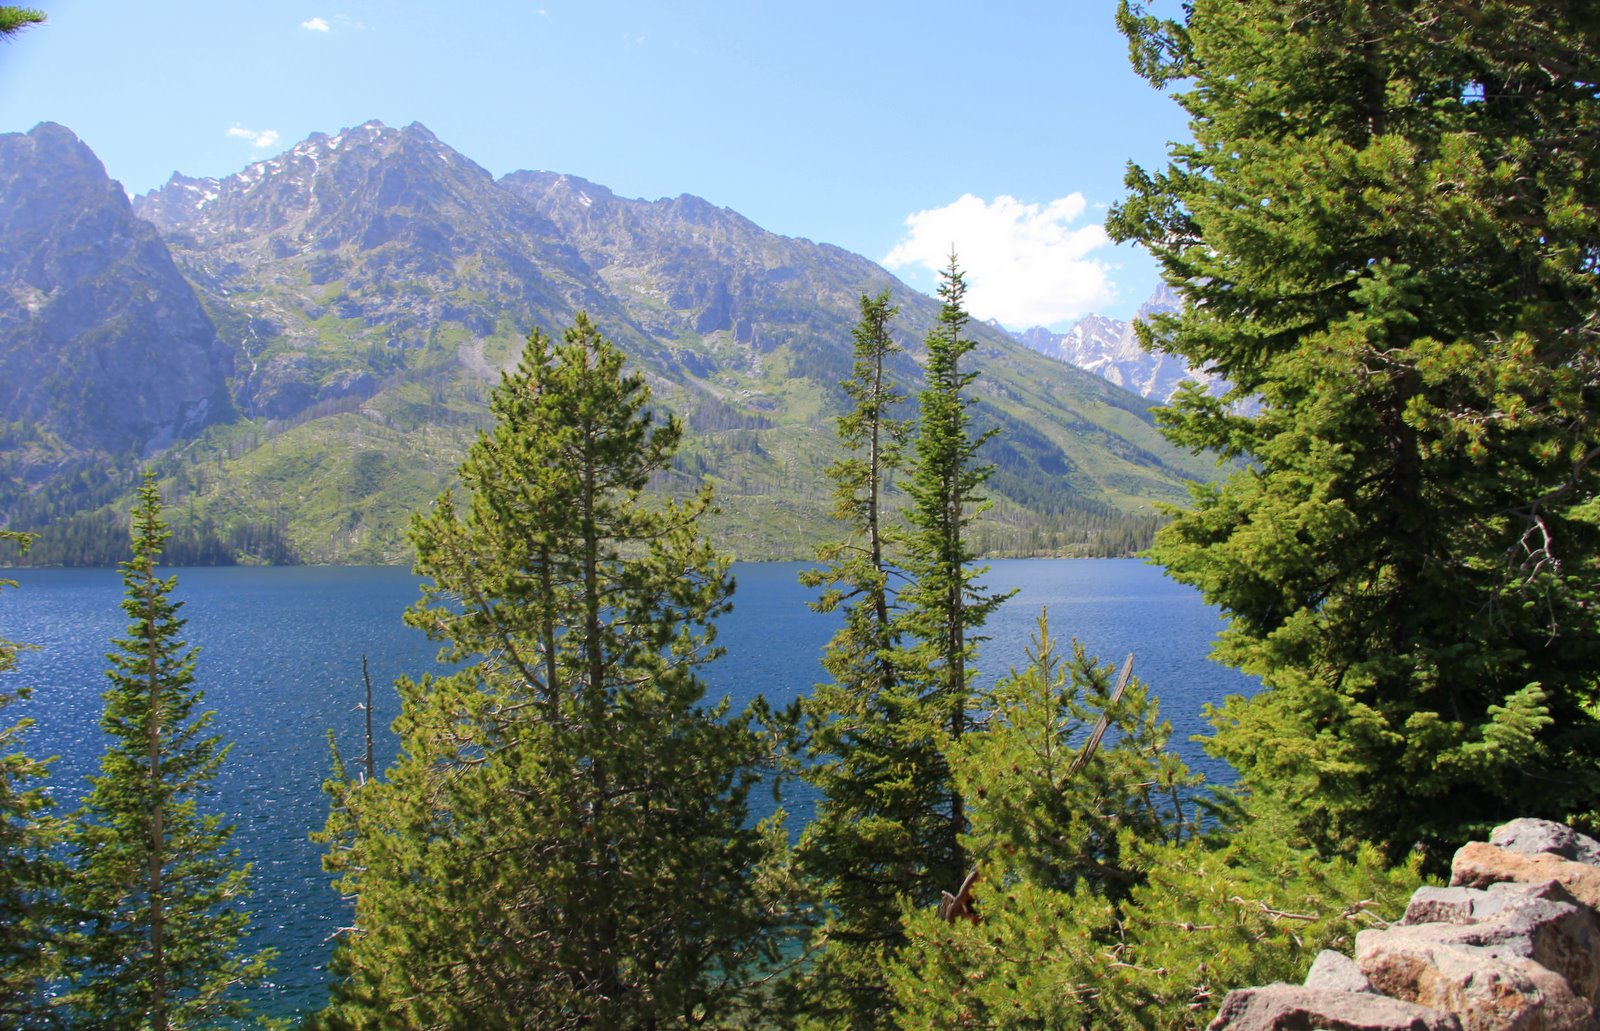 Jenny Lake - Grand Teton National Park | Jenny Lake is a ... |Jenny Lake Grand Teton National Park